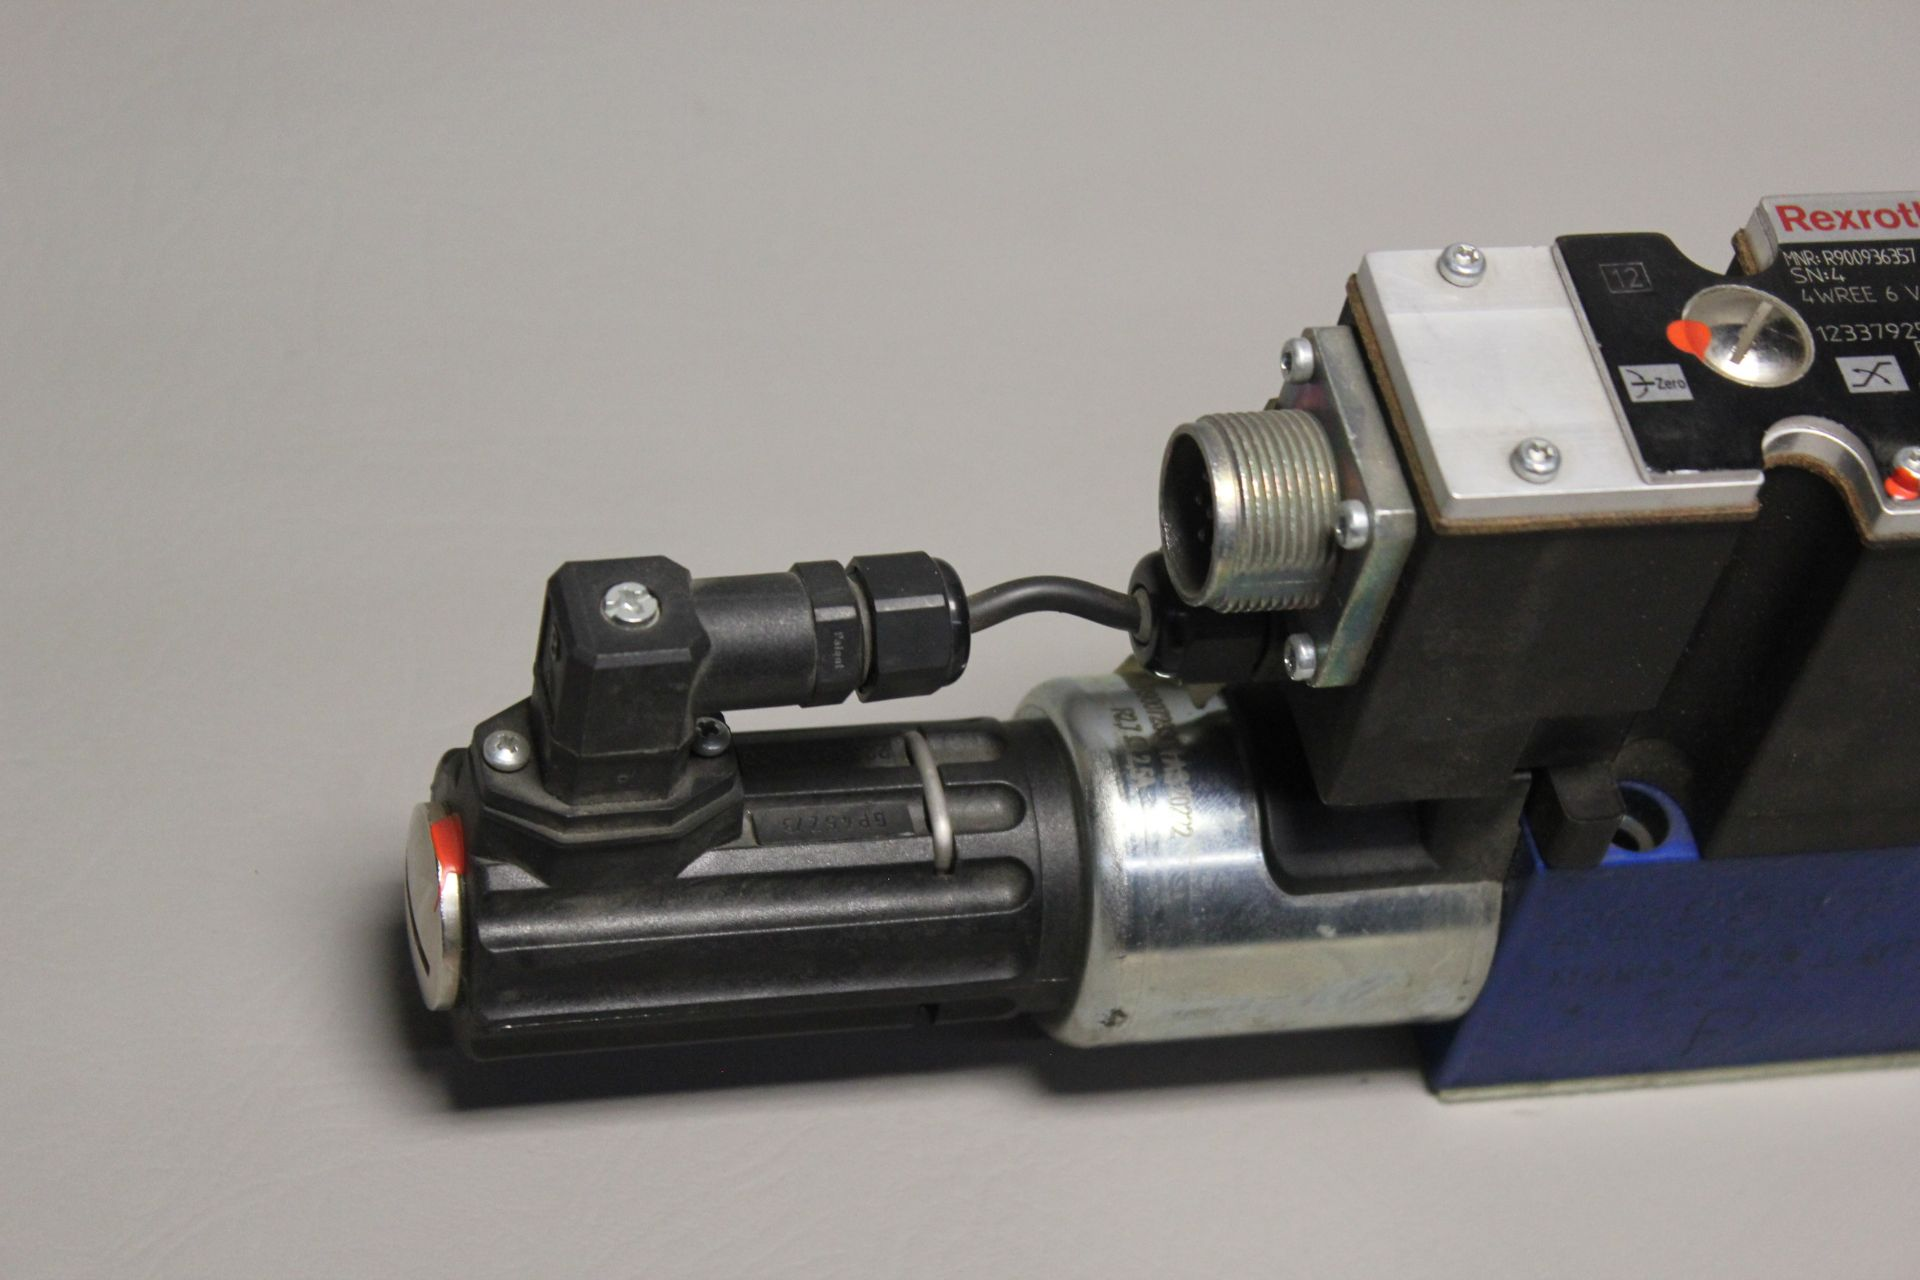 NEW REXROTH HYDRAULIC PROPORTIONAL VALVE - Image 3 of 6